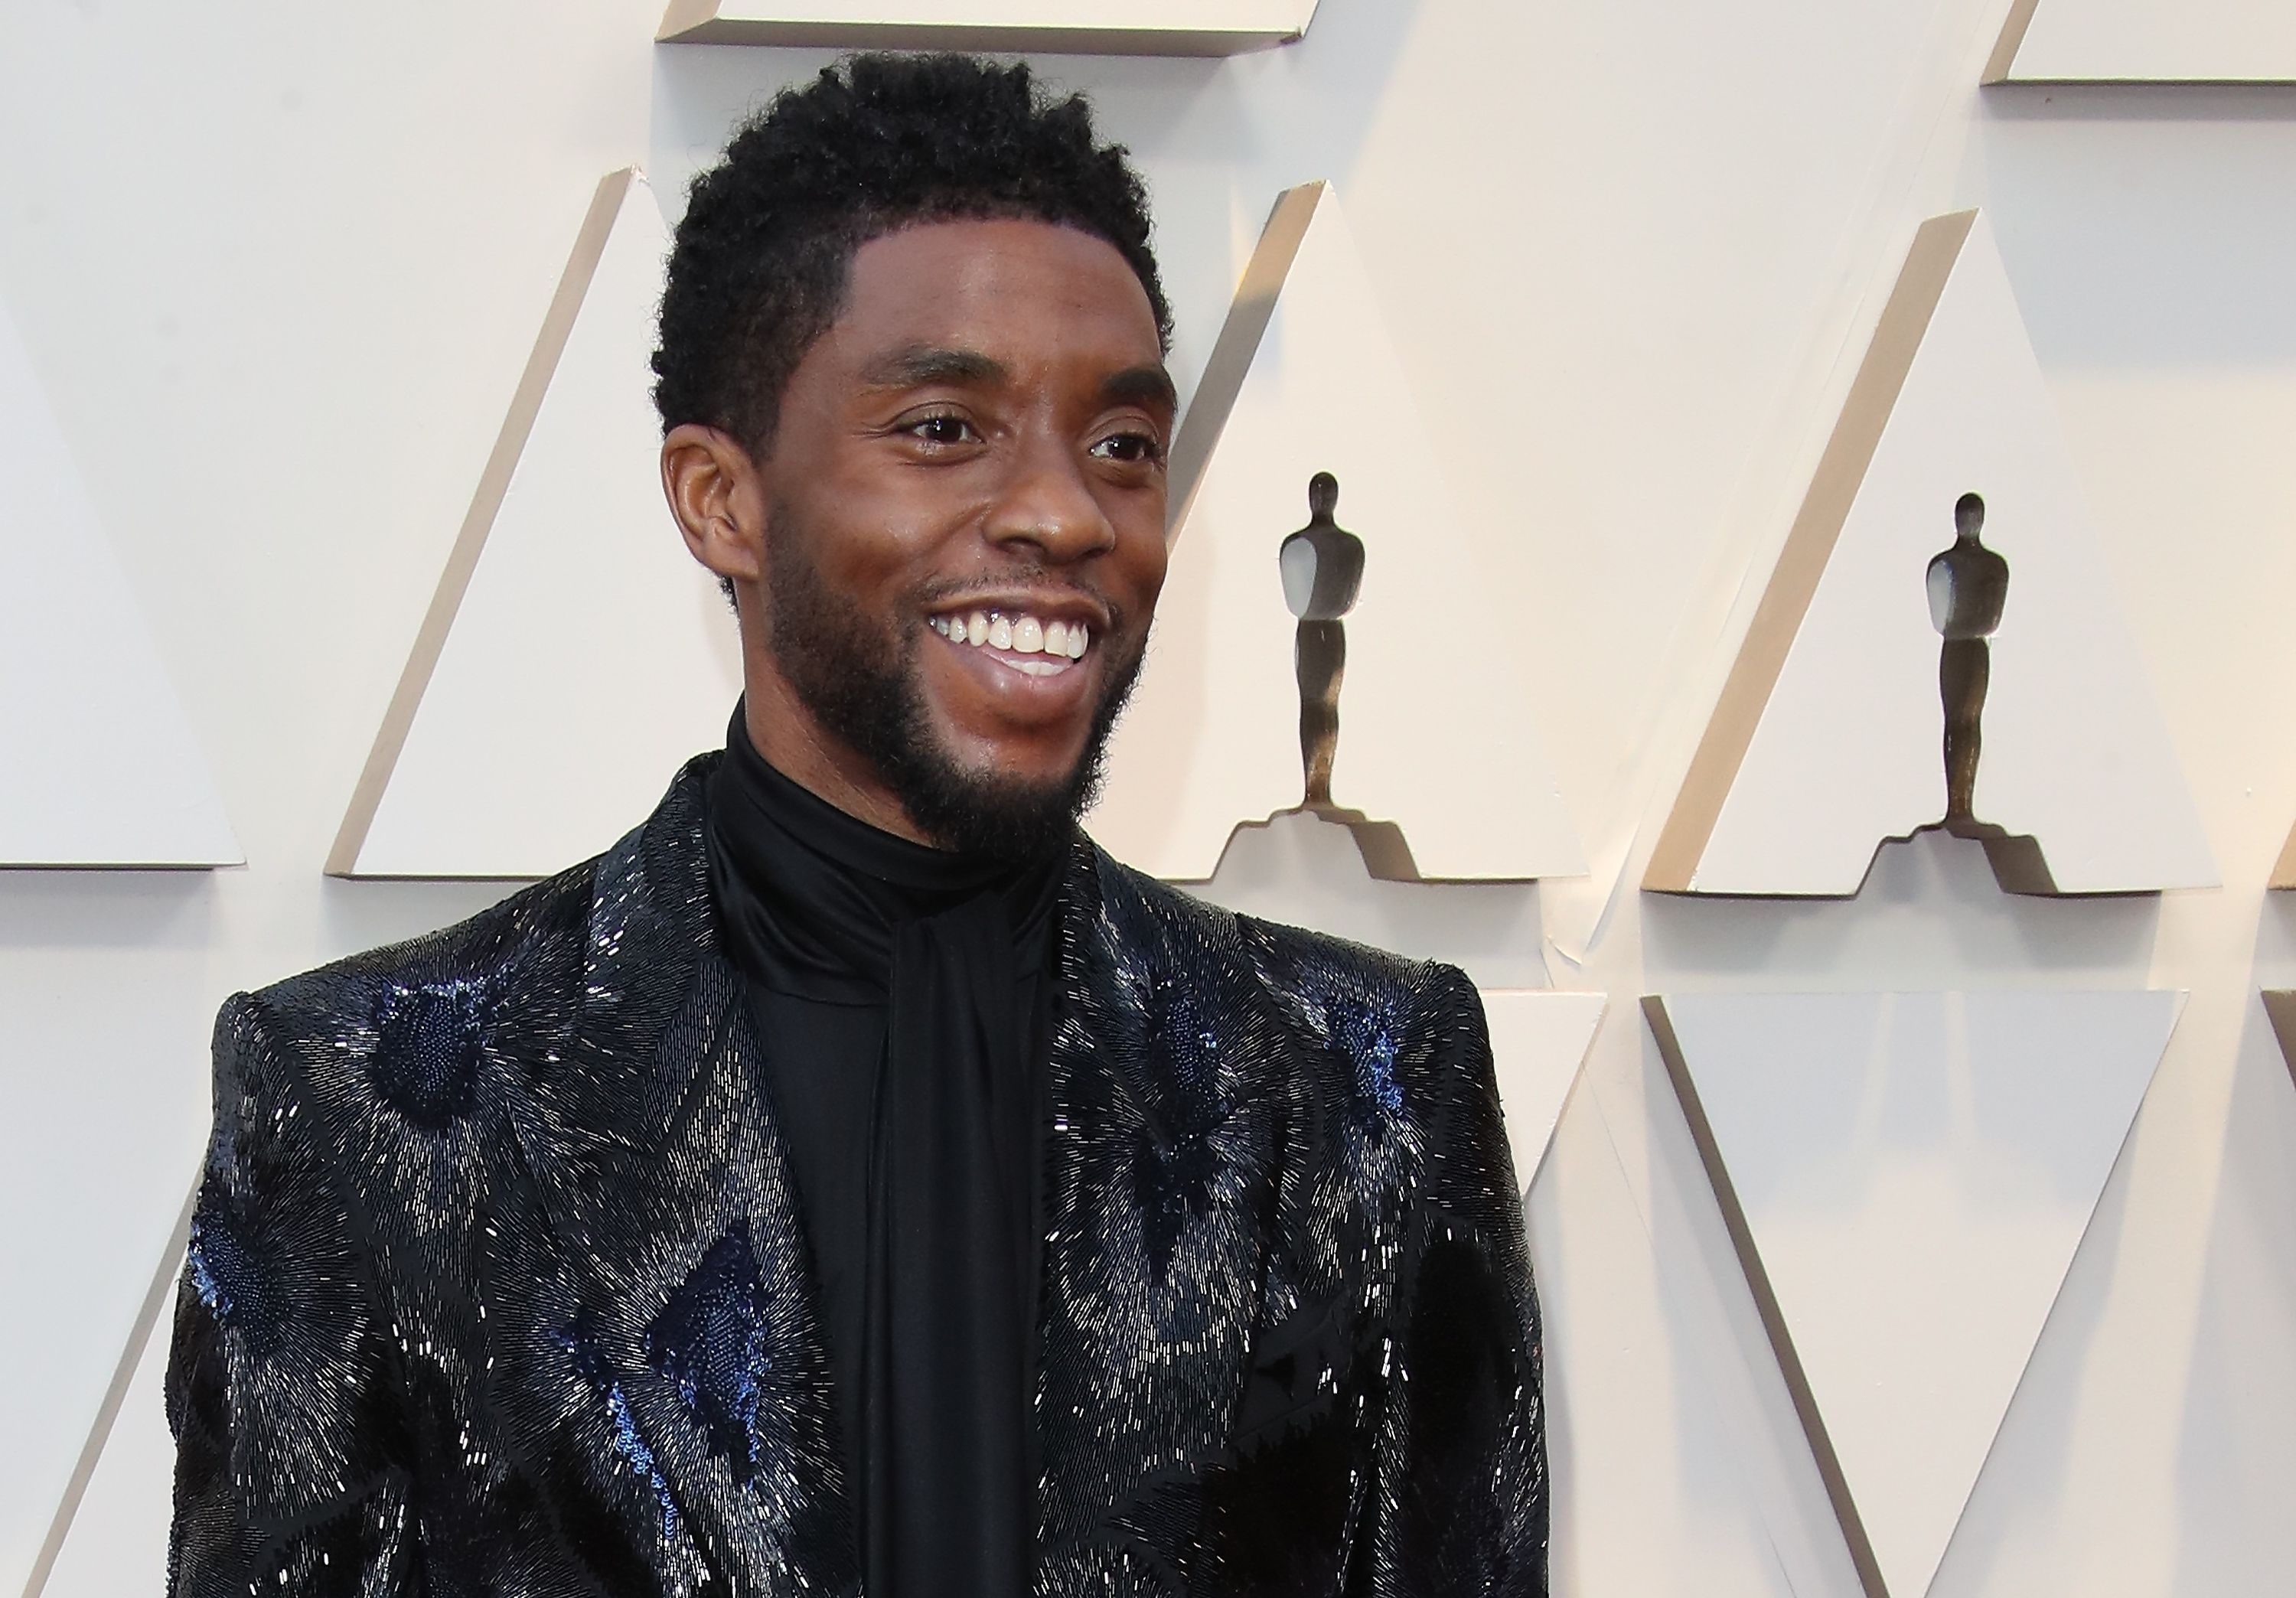 Chadwick Boseman assiste à la 91e cérémonie annuelle des Academy Awards à Hollywood et Highland le 24 février 2019 à Hollywood, en Californie. | Photo : Getty Images